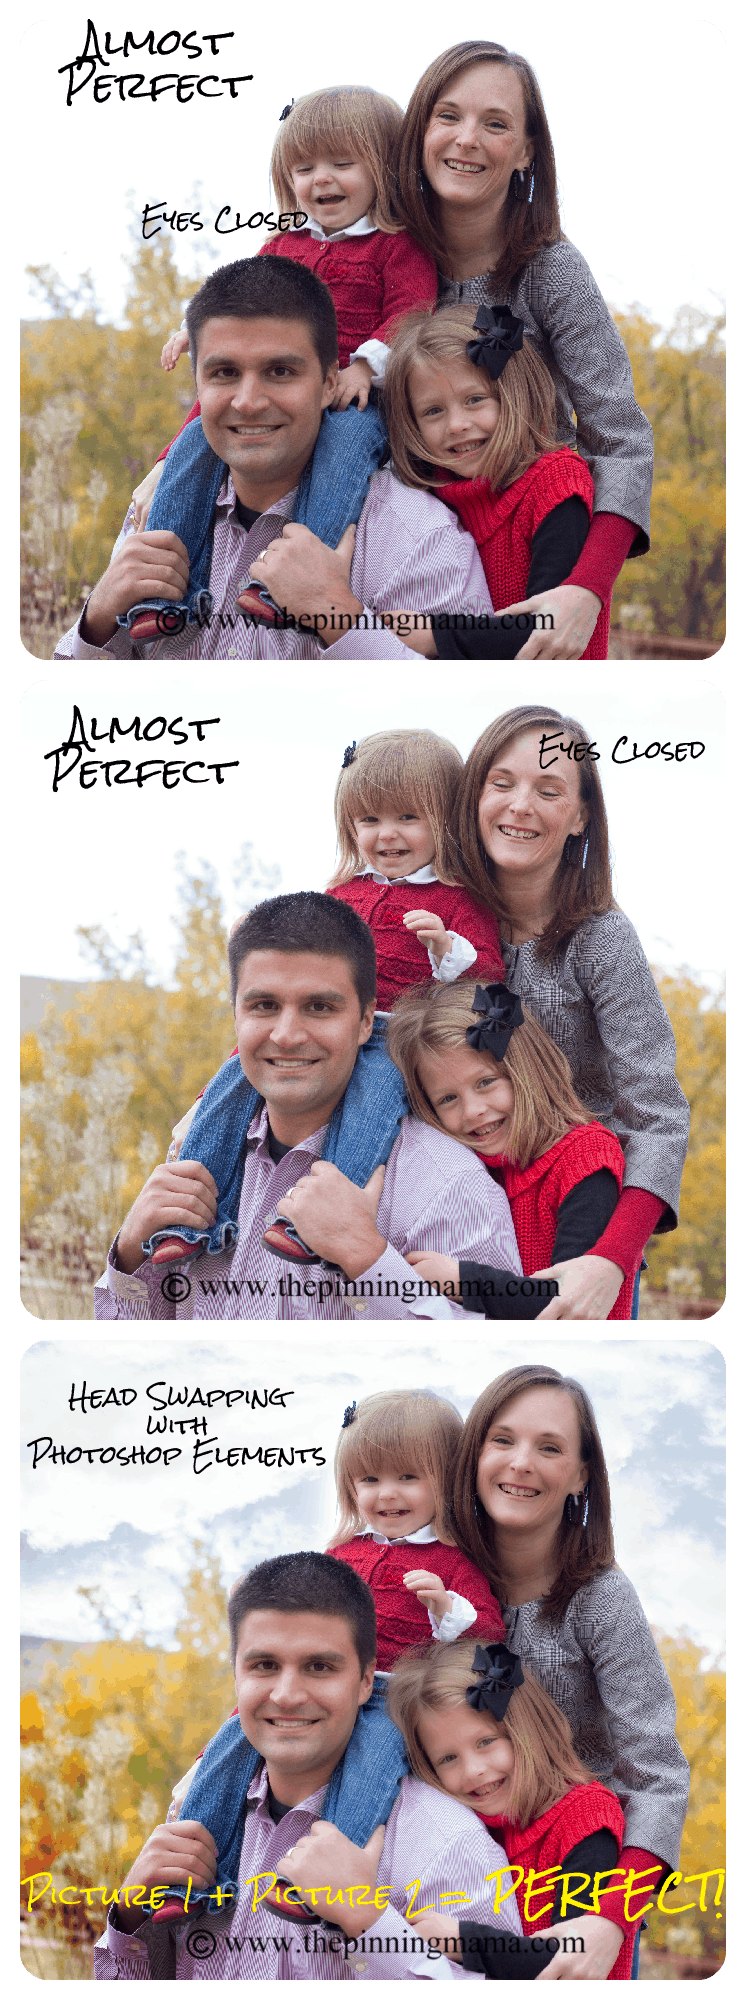 {The Power of Photo Editing} How to Take Great Pictures with the Camera You Already Own! by www.thepinningmama.com